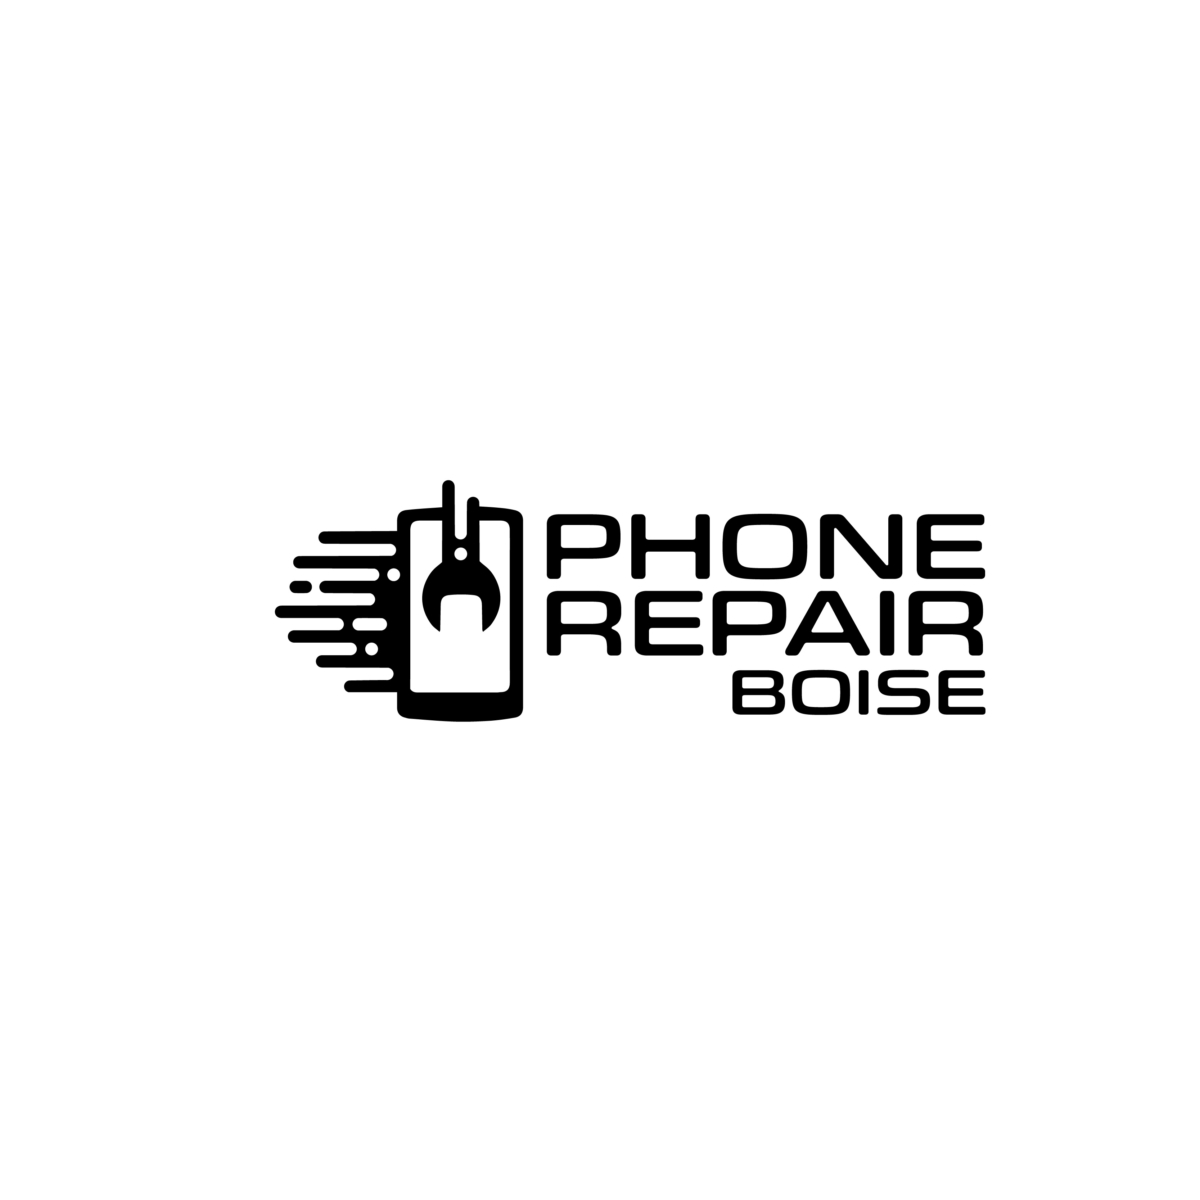 Phone Repair Boise Logo